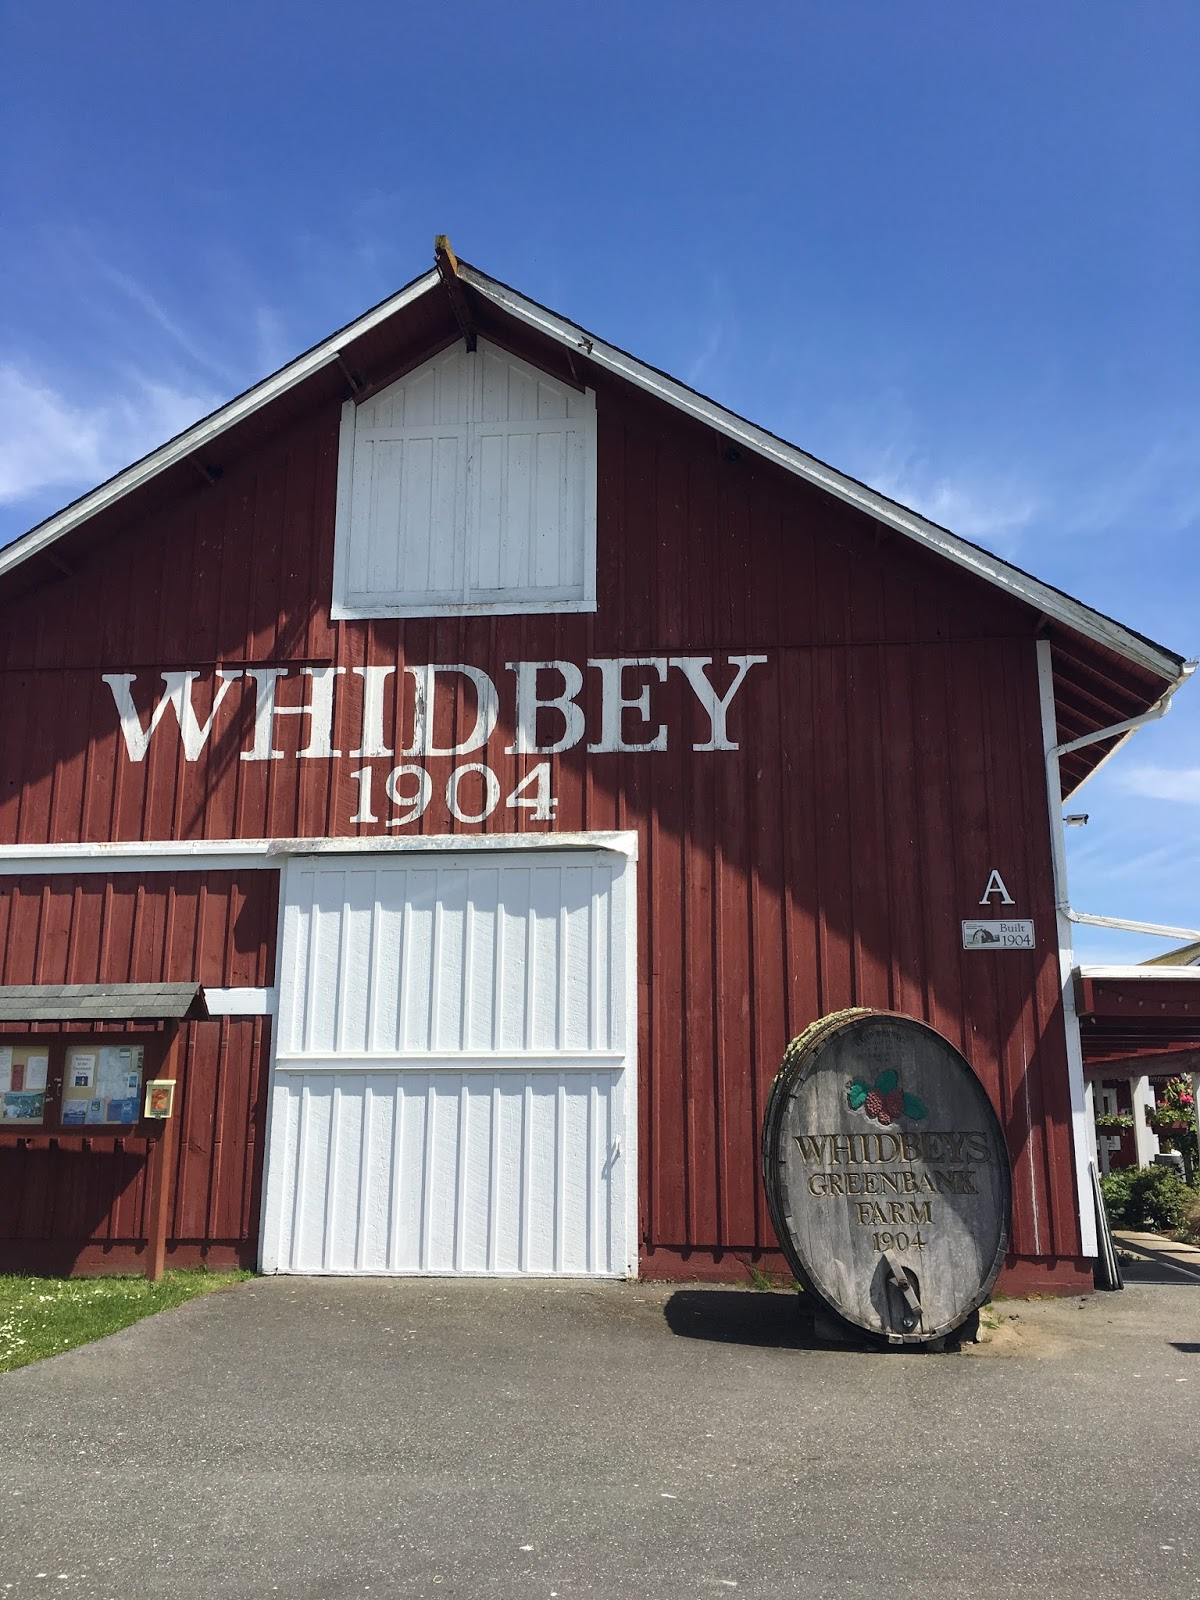 A Weekend on Whidbey Island